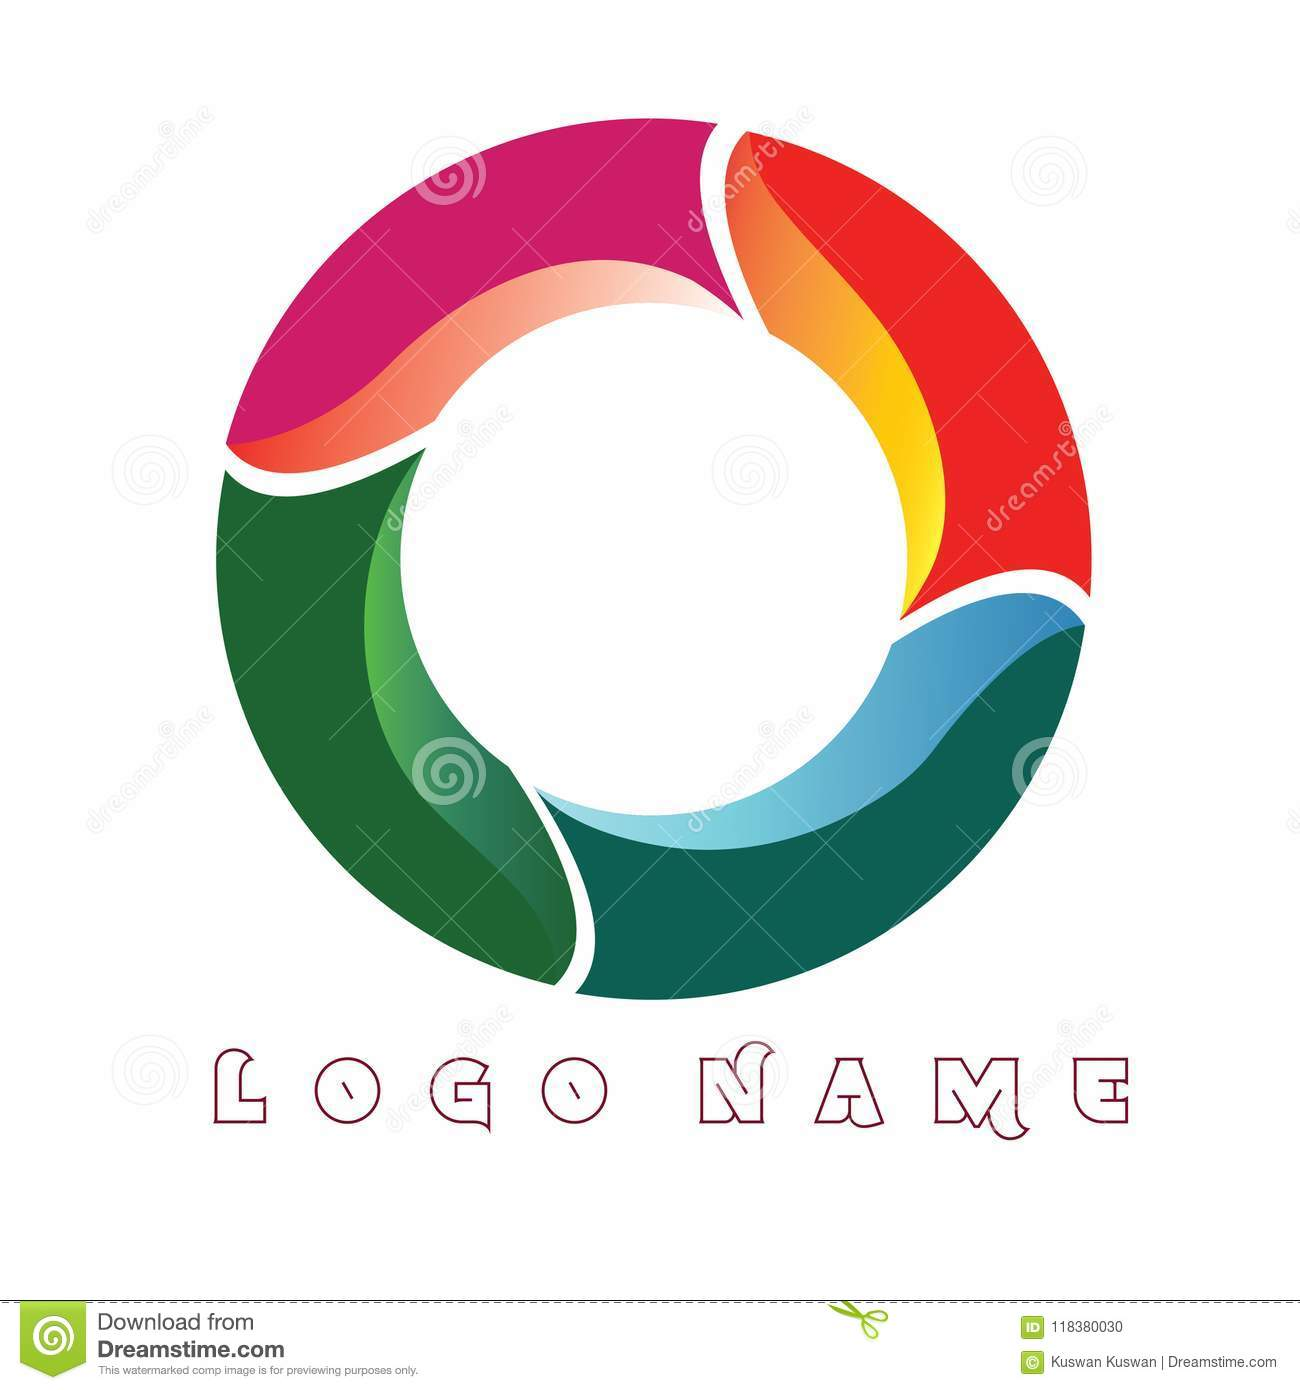 logo circle letter o full color template logo for company or store optcal